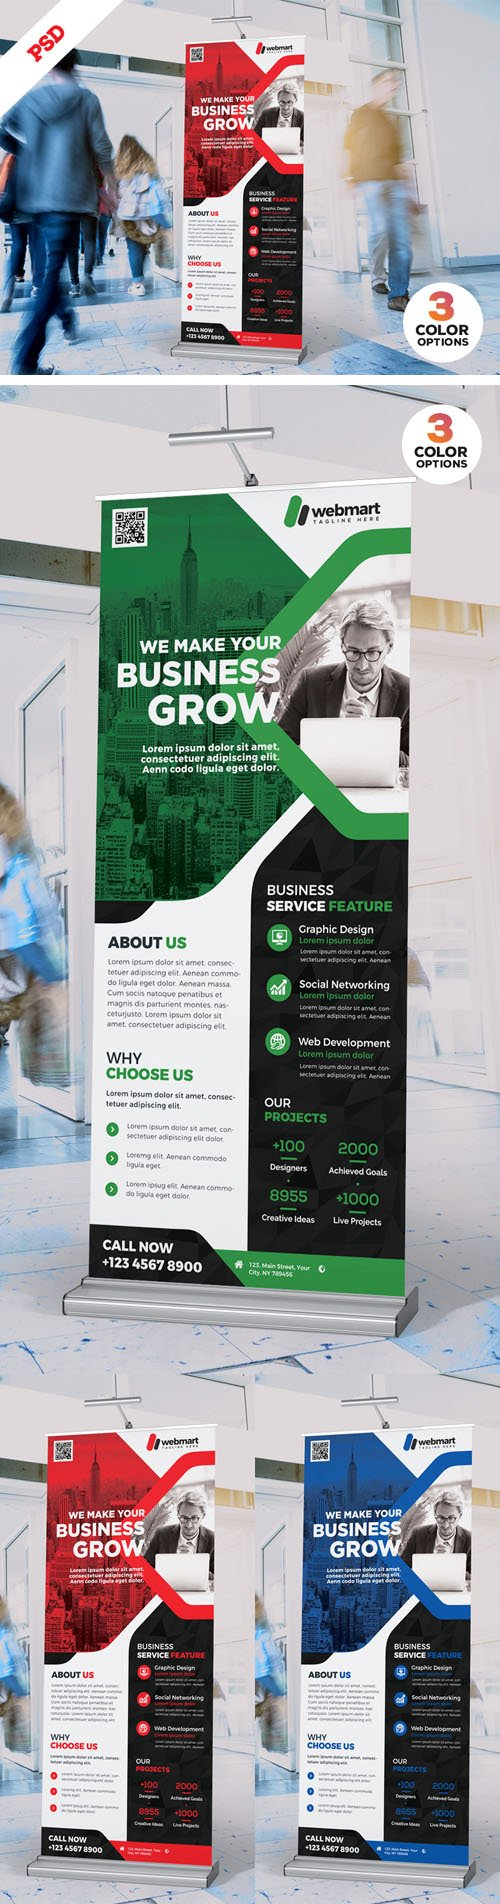 Corporate Roll-up Banner Design PSD Bundle